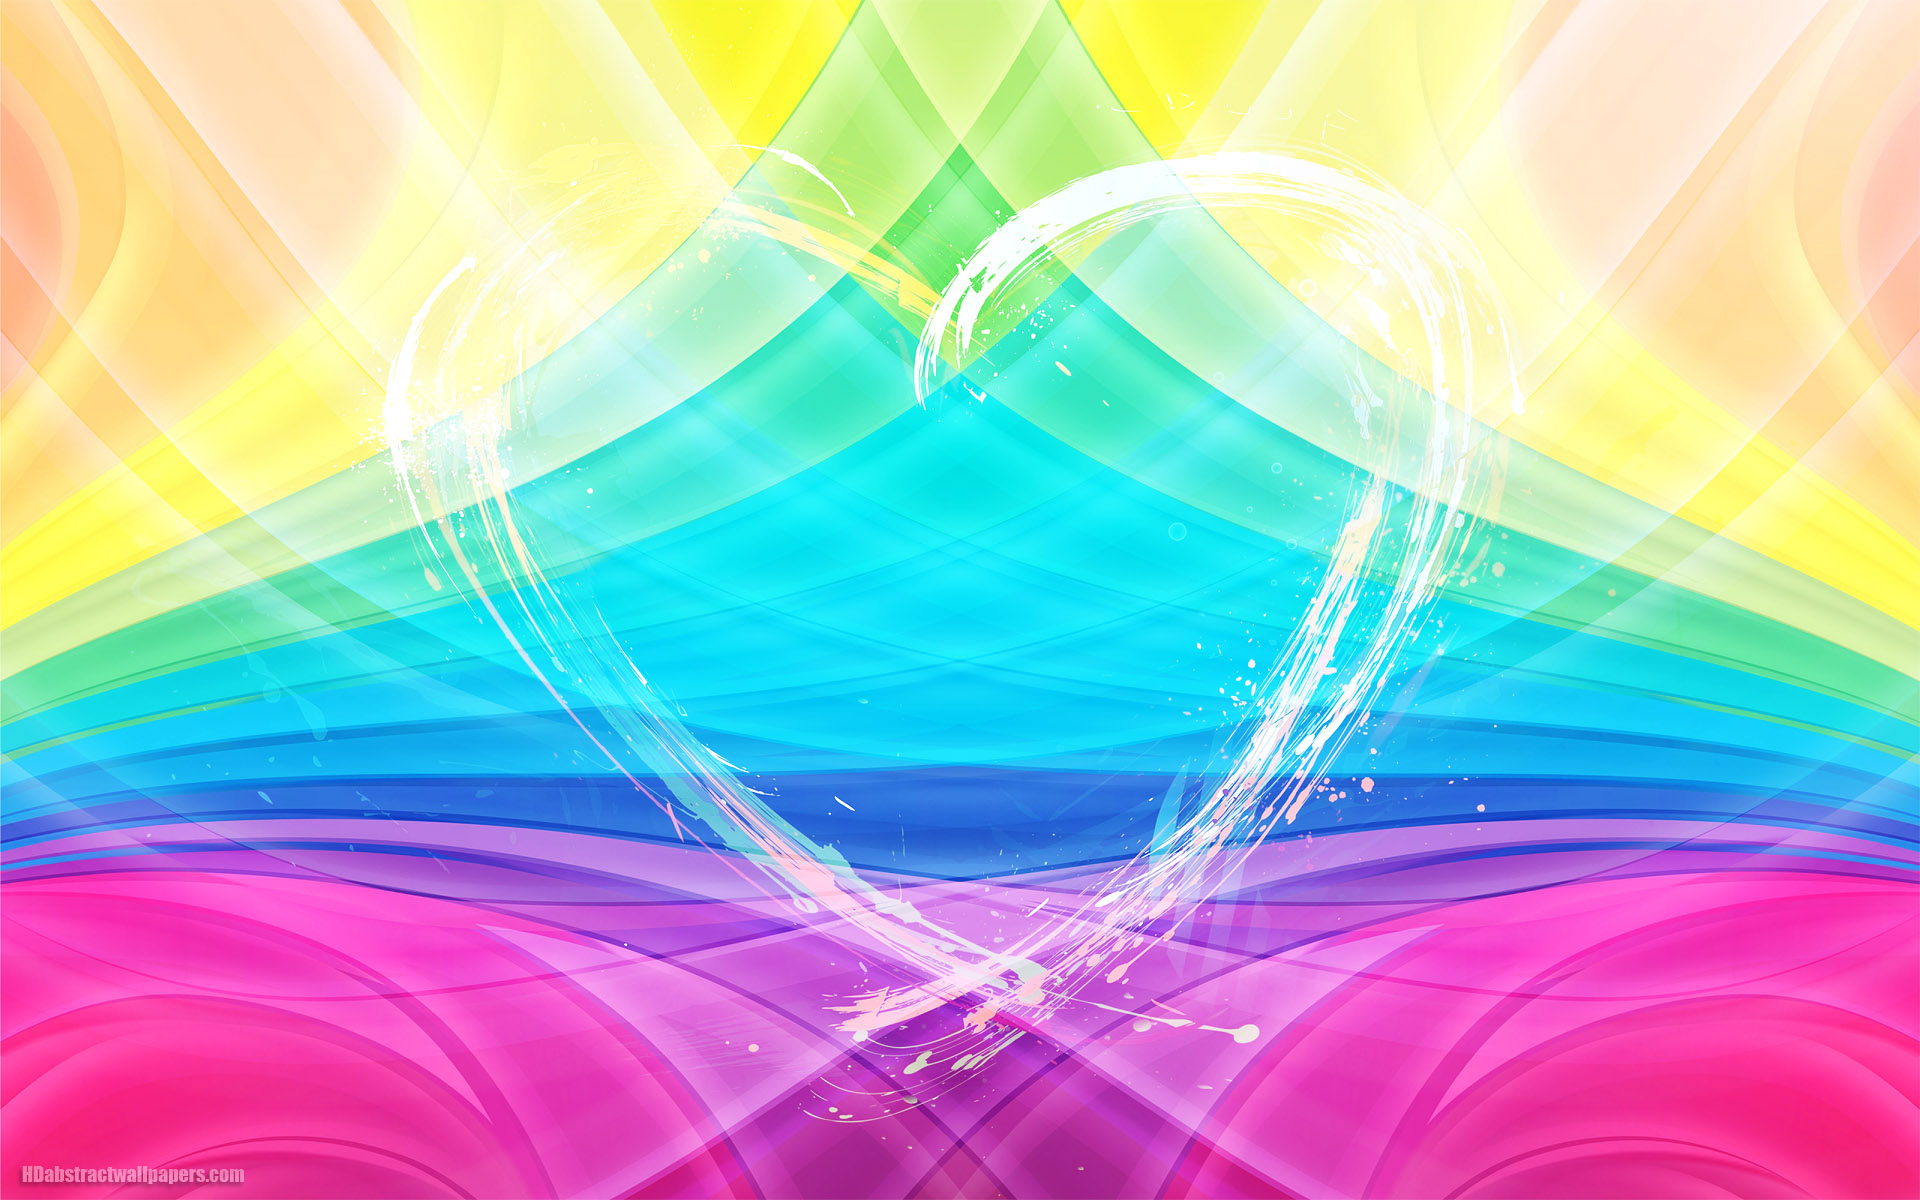 Colorful Abstract Wallpaper With Big Love Heart Made Of Lights